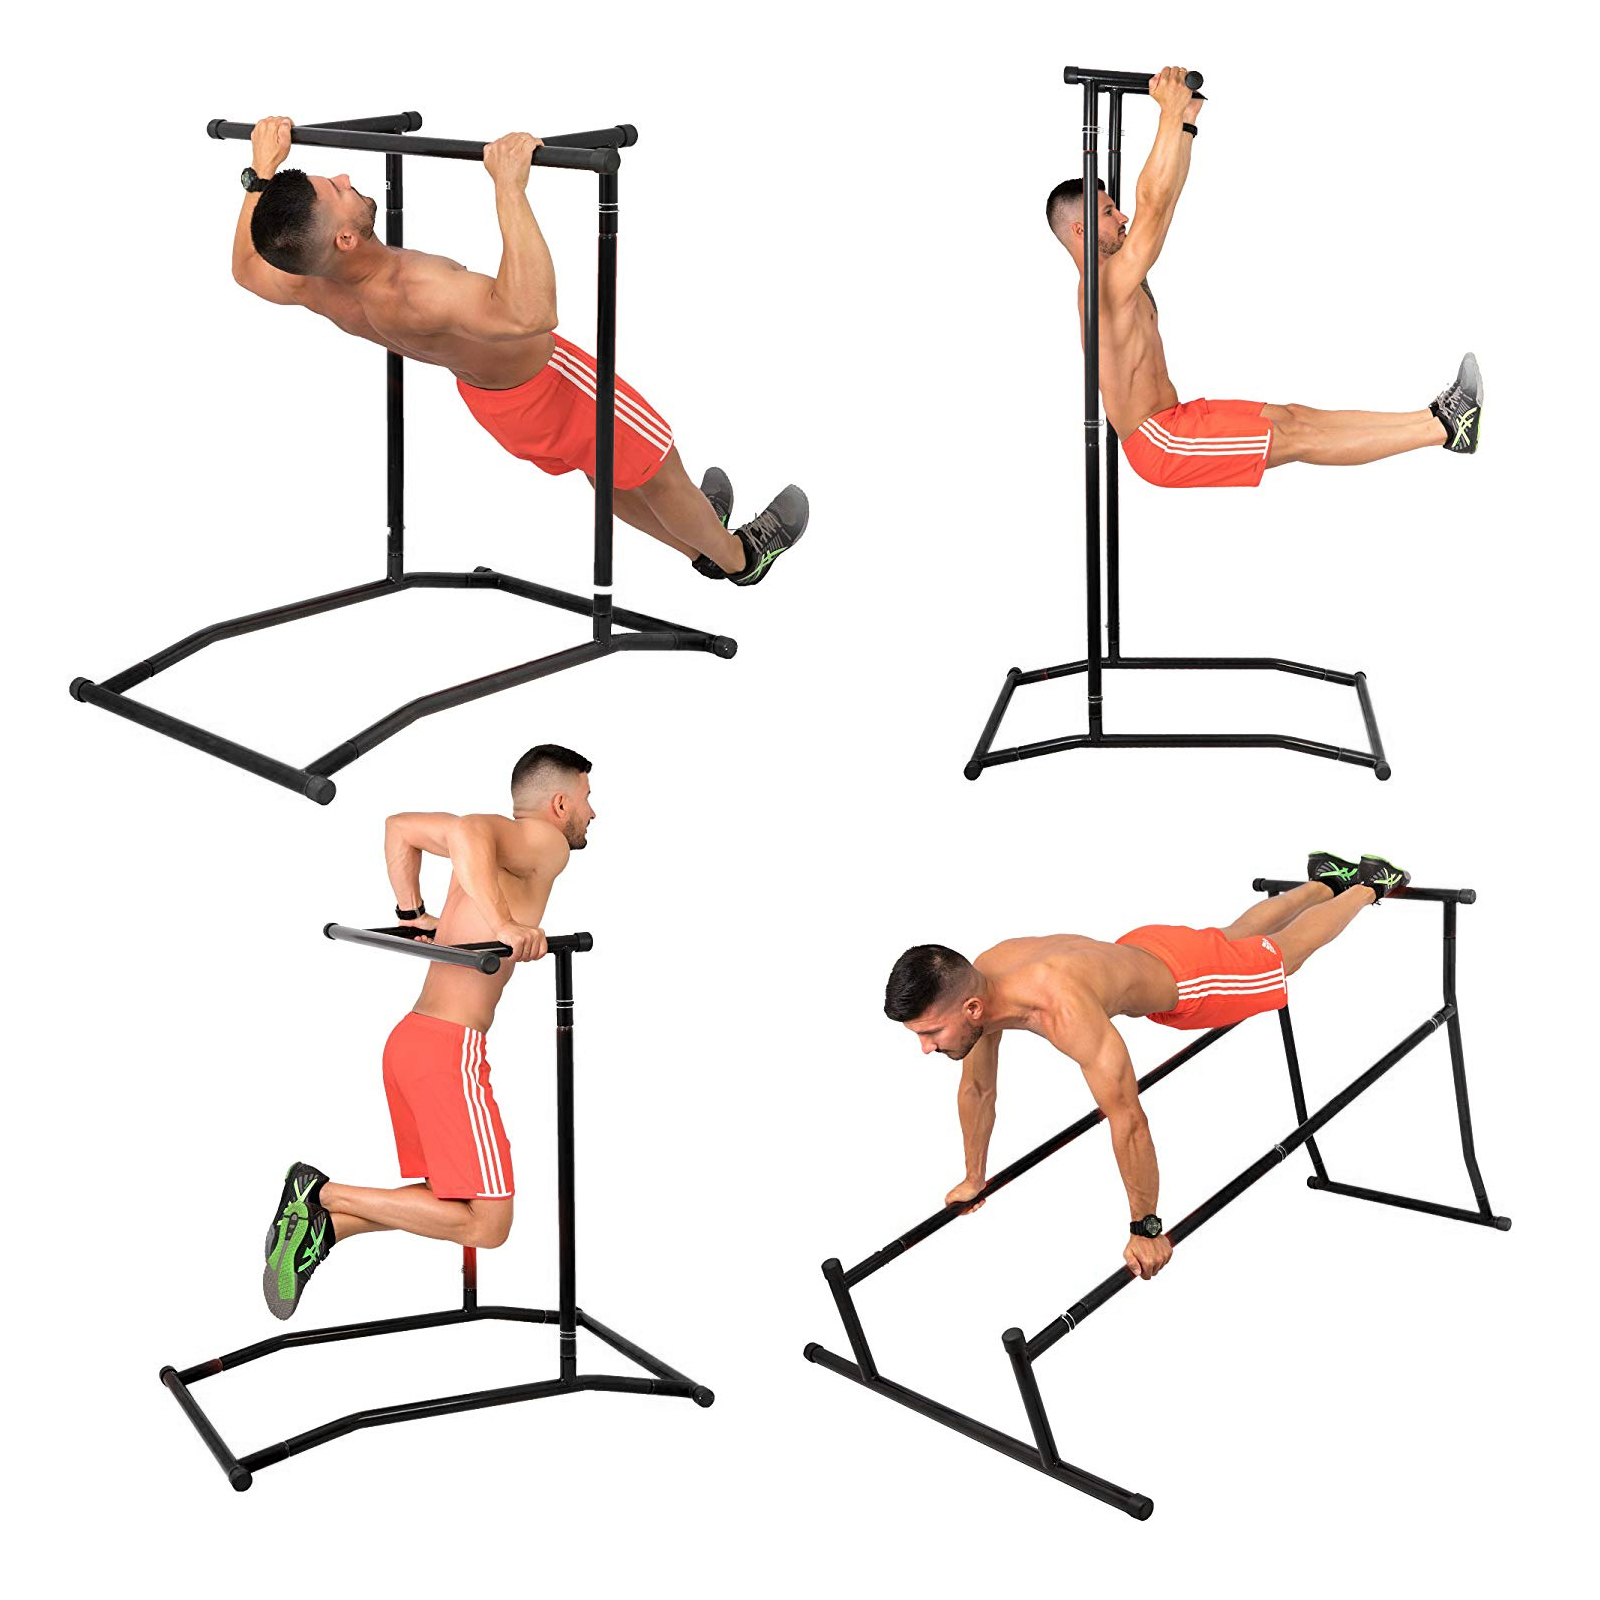 Portable-Power-Tower-for-Home-Gym-Workout-With-Dip-Station-And-Chin-Pull-Up-Bar thumbnail 48